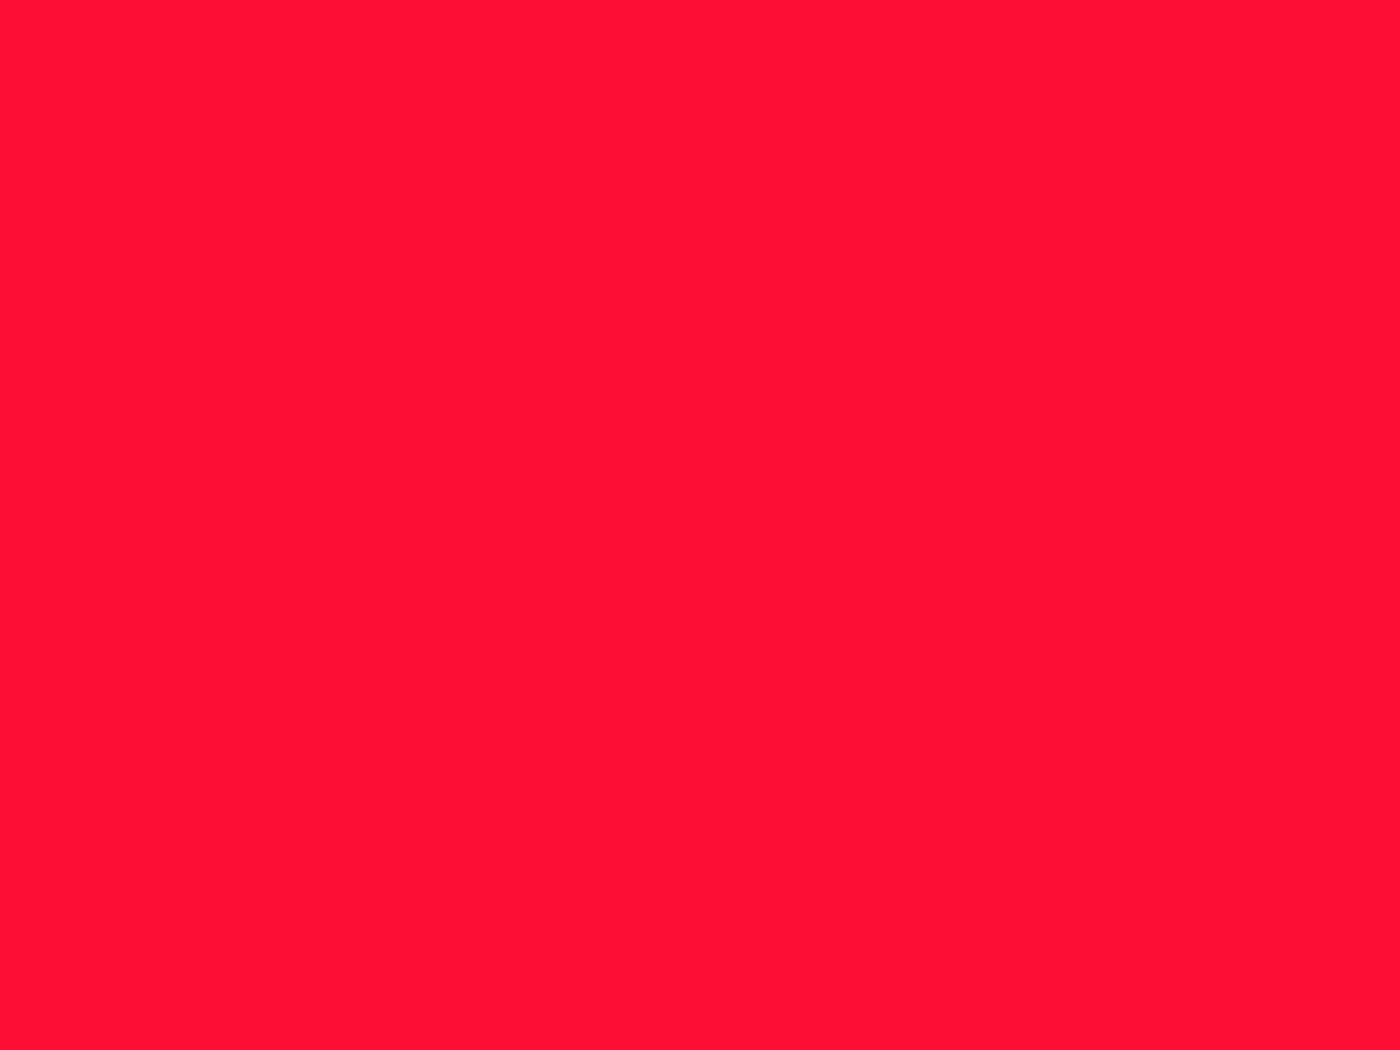 1400x1050 Tractor Red Solid Color Background